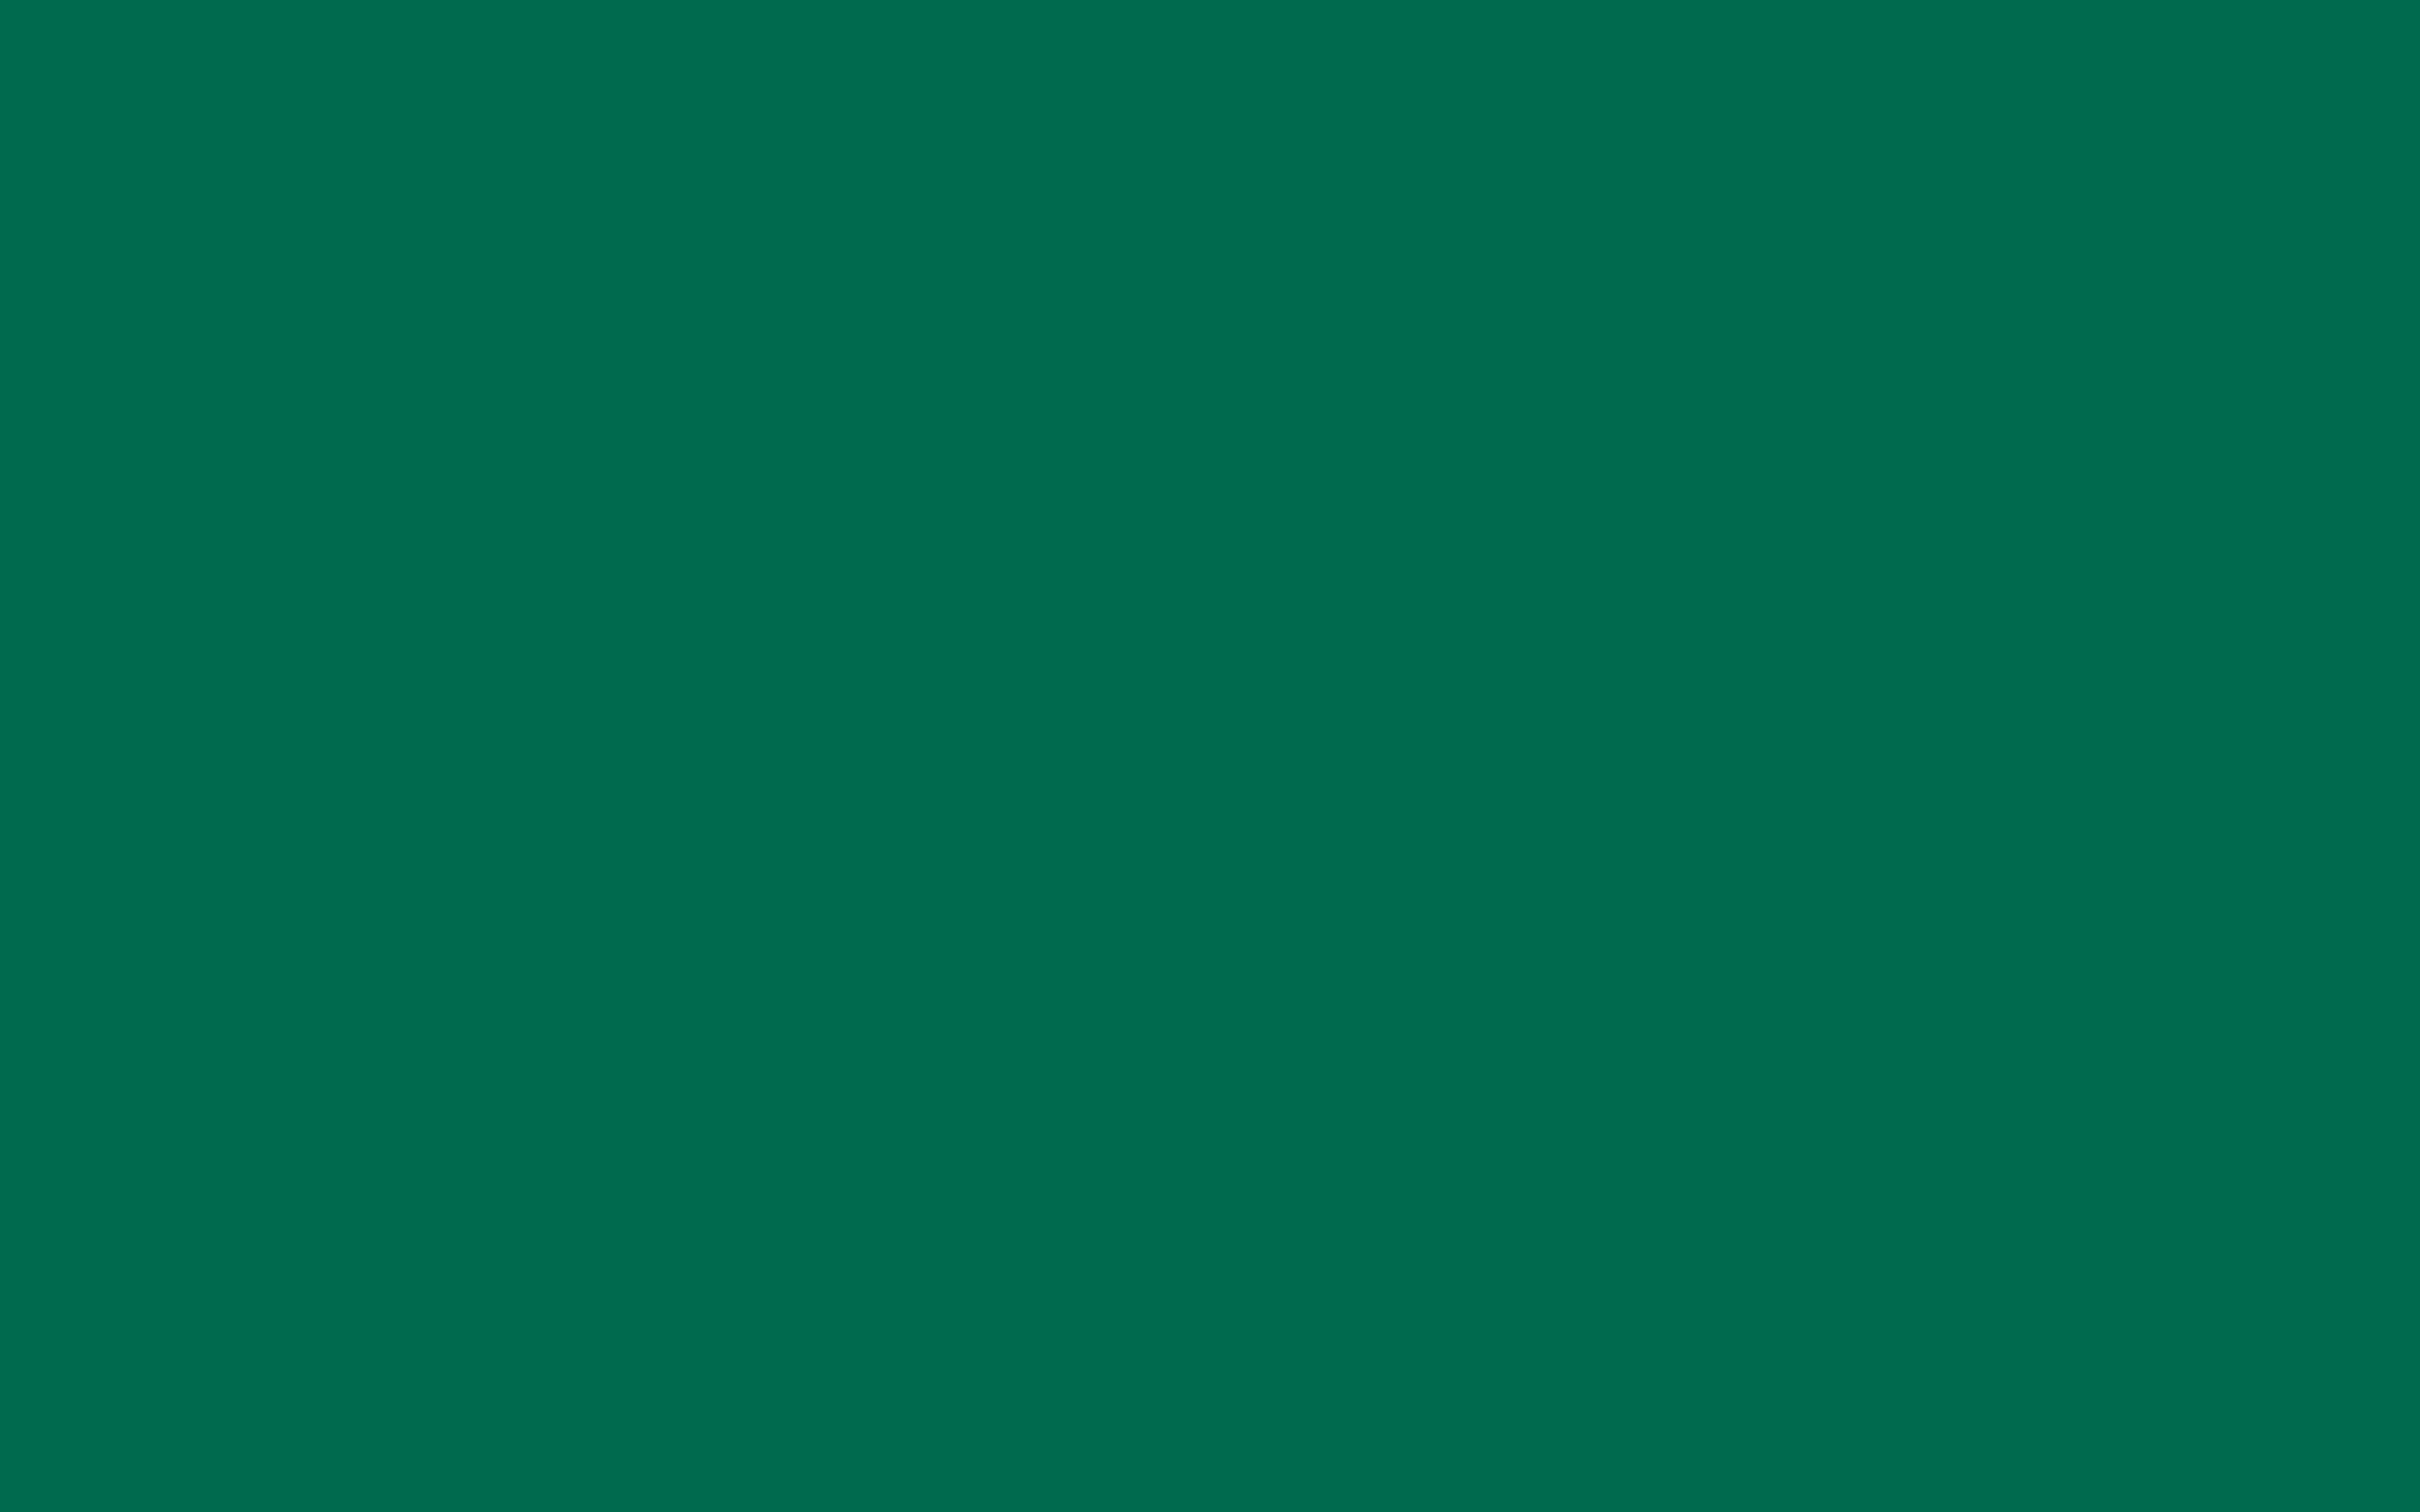 2880x1800 Bottle Green Solid Color Background